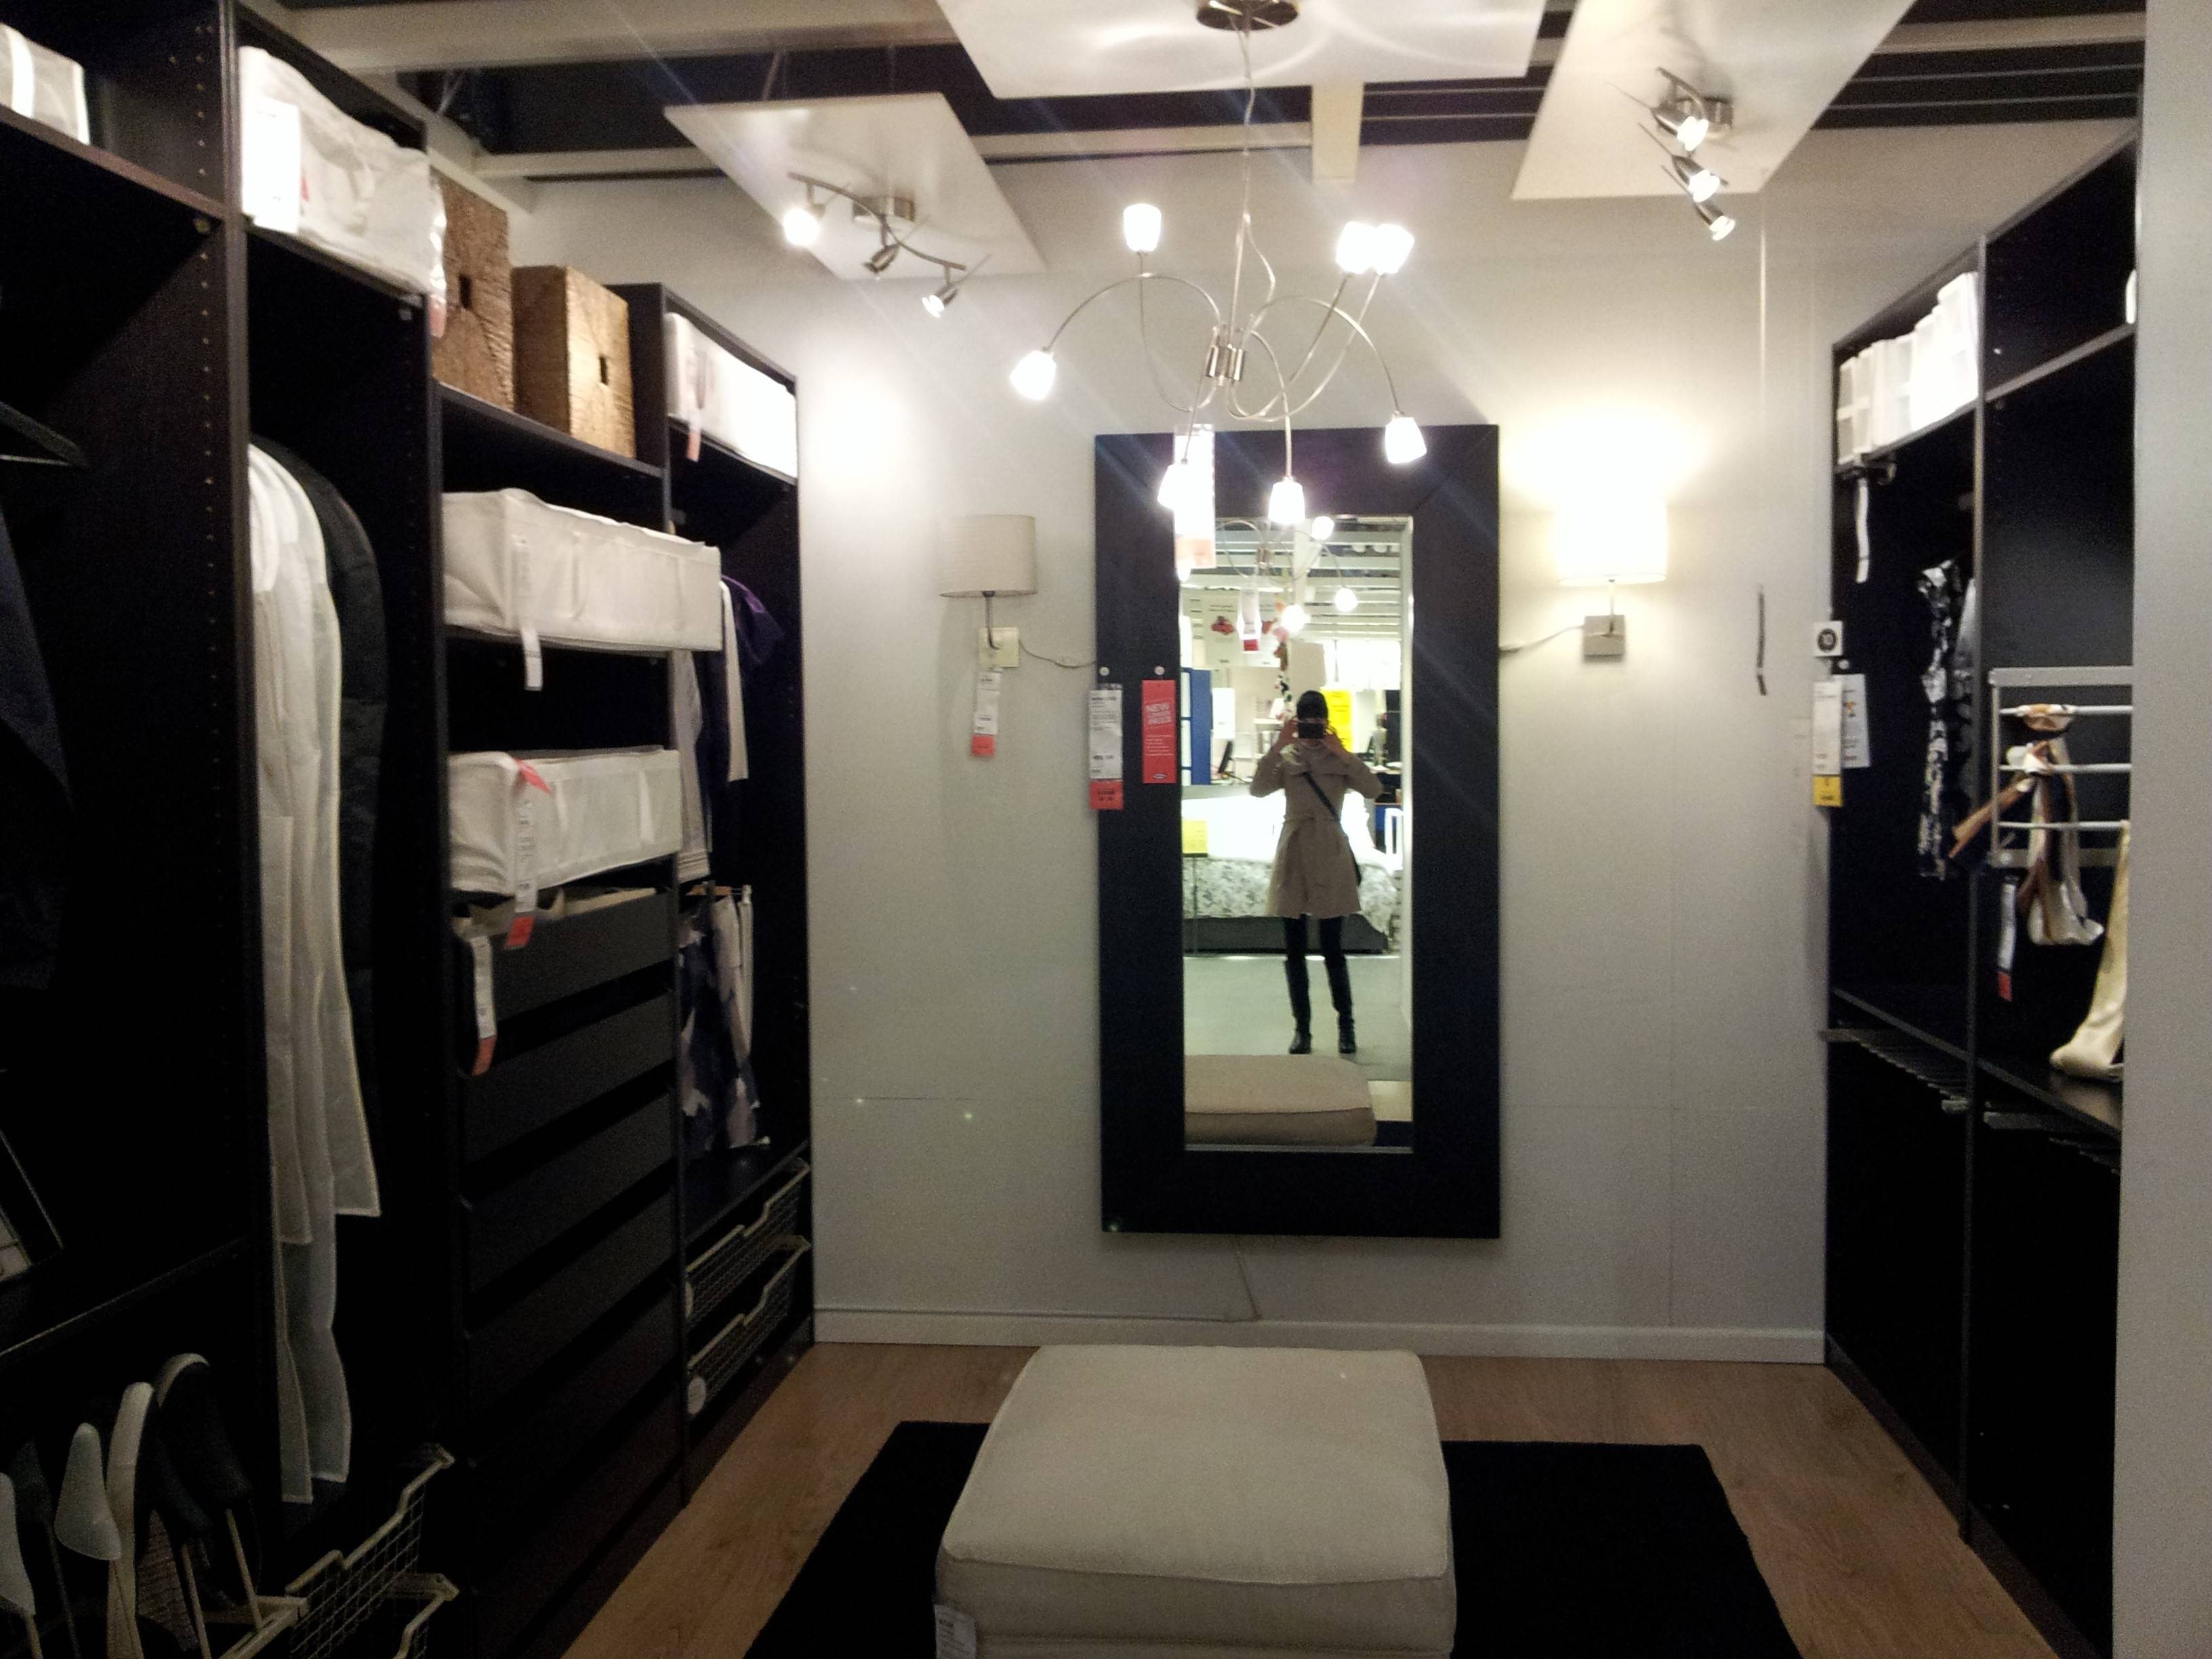 Closet Solutions Ikea. Delightful Ikea Closet Organizer Design intended for Dark Wood Wardrobes Ikea (Image 7 of 30)